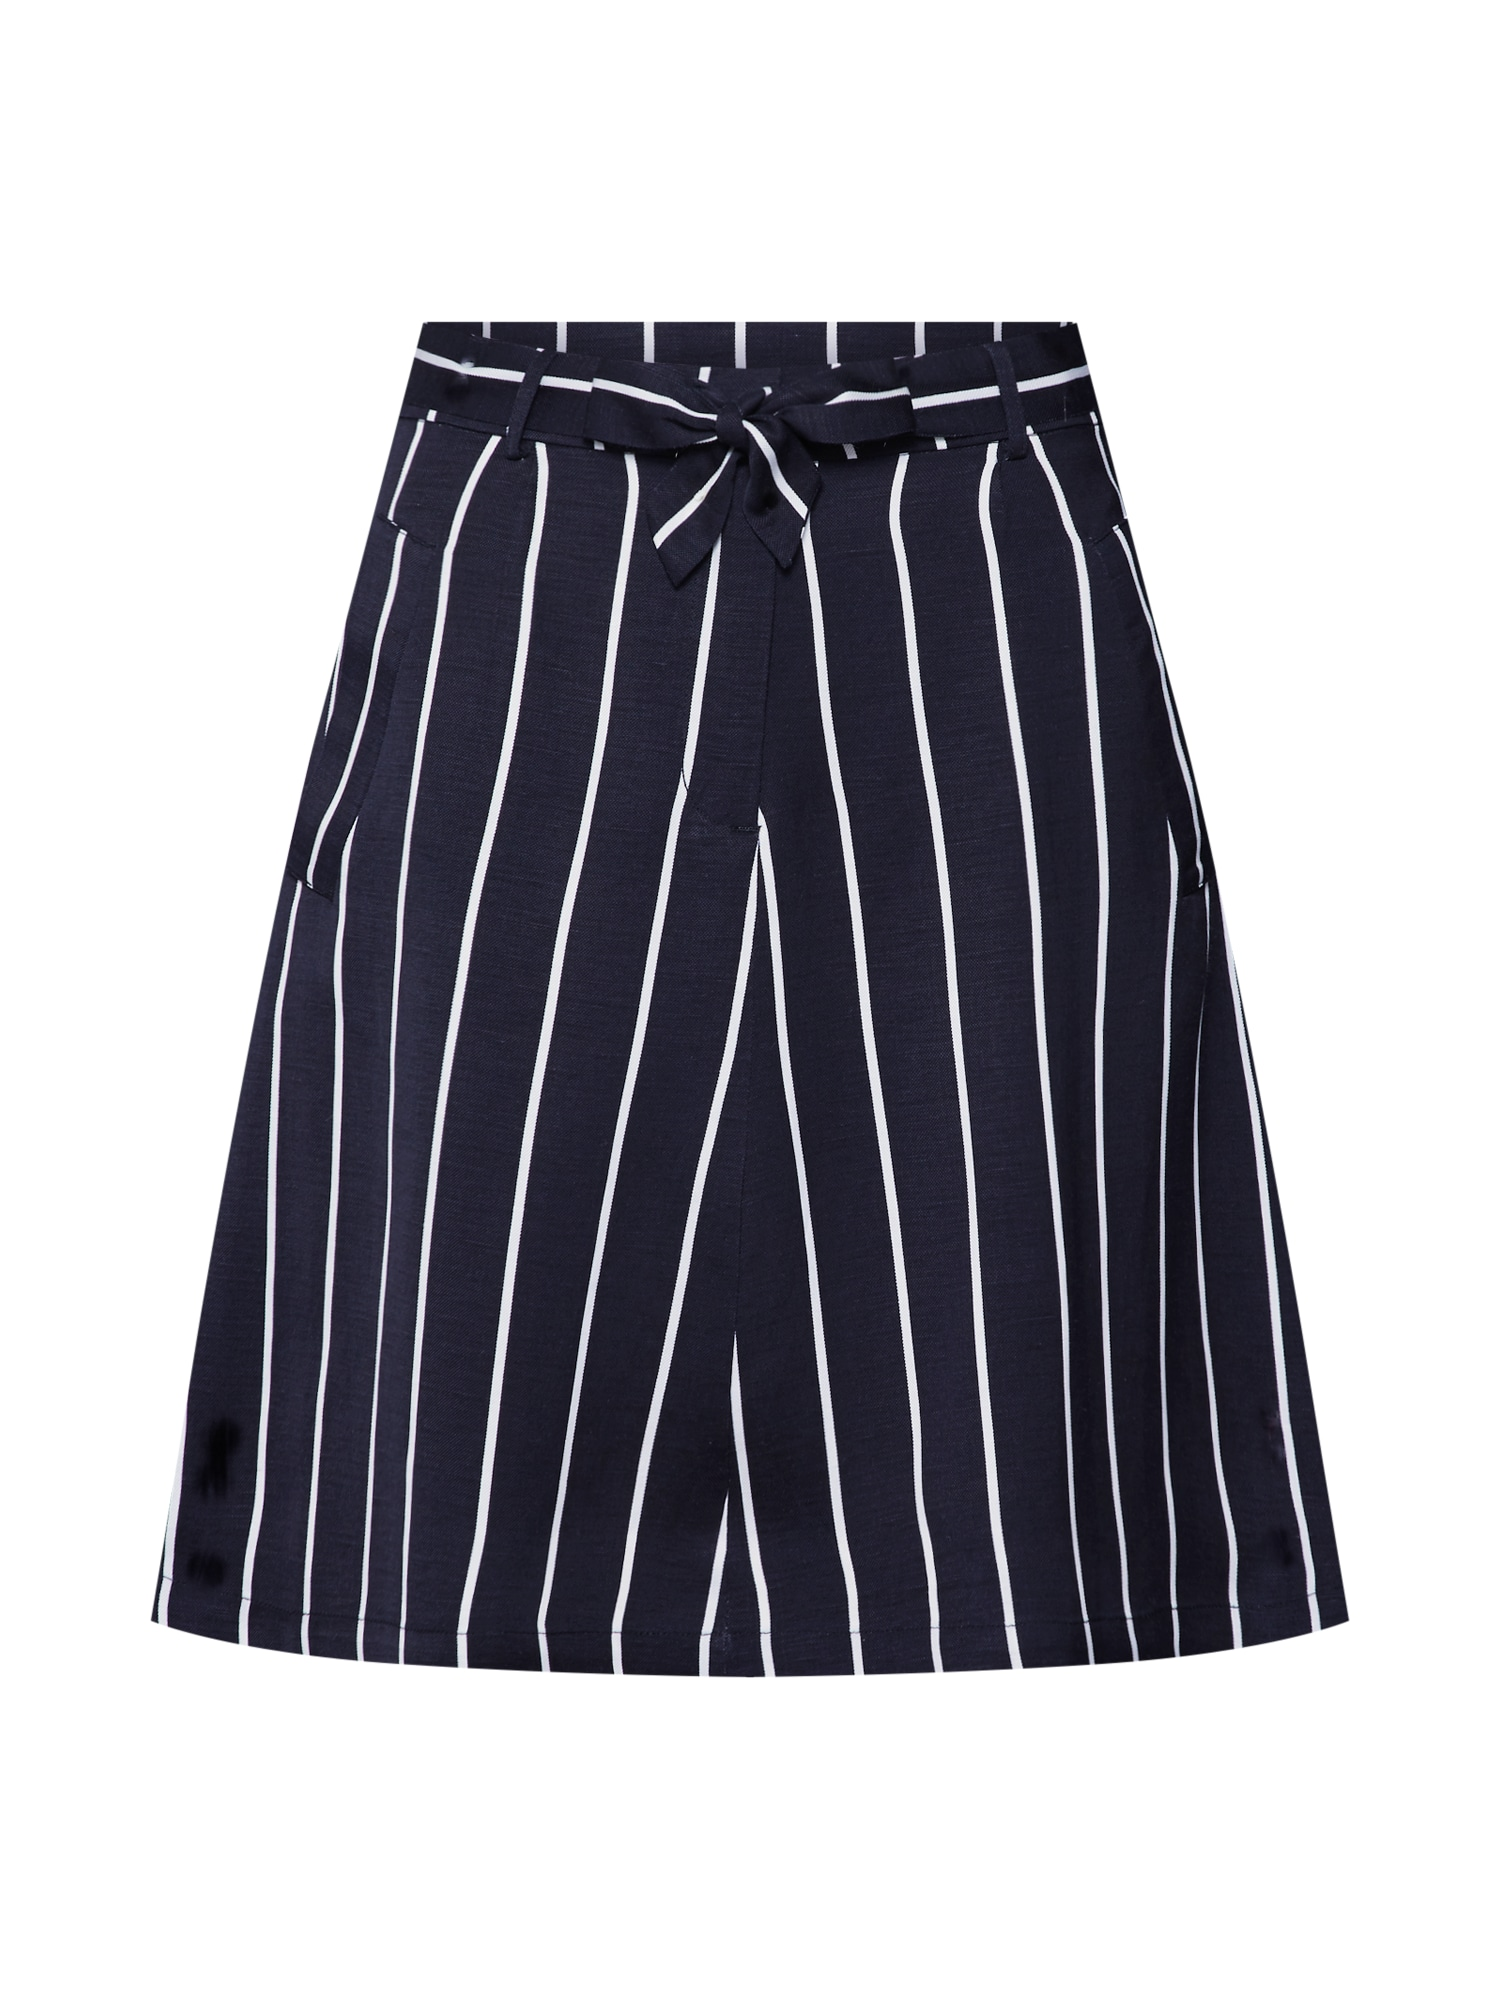 Sukně Striped Linen Skirt modrá Pop Copenhagen